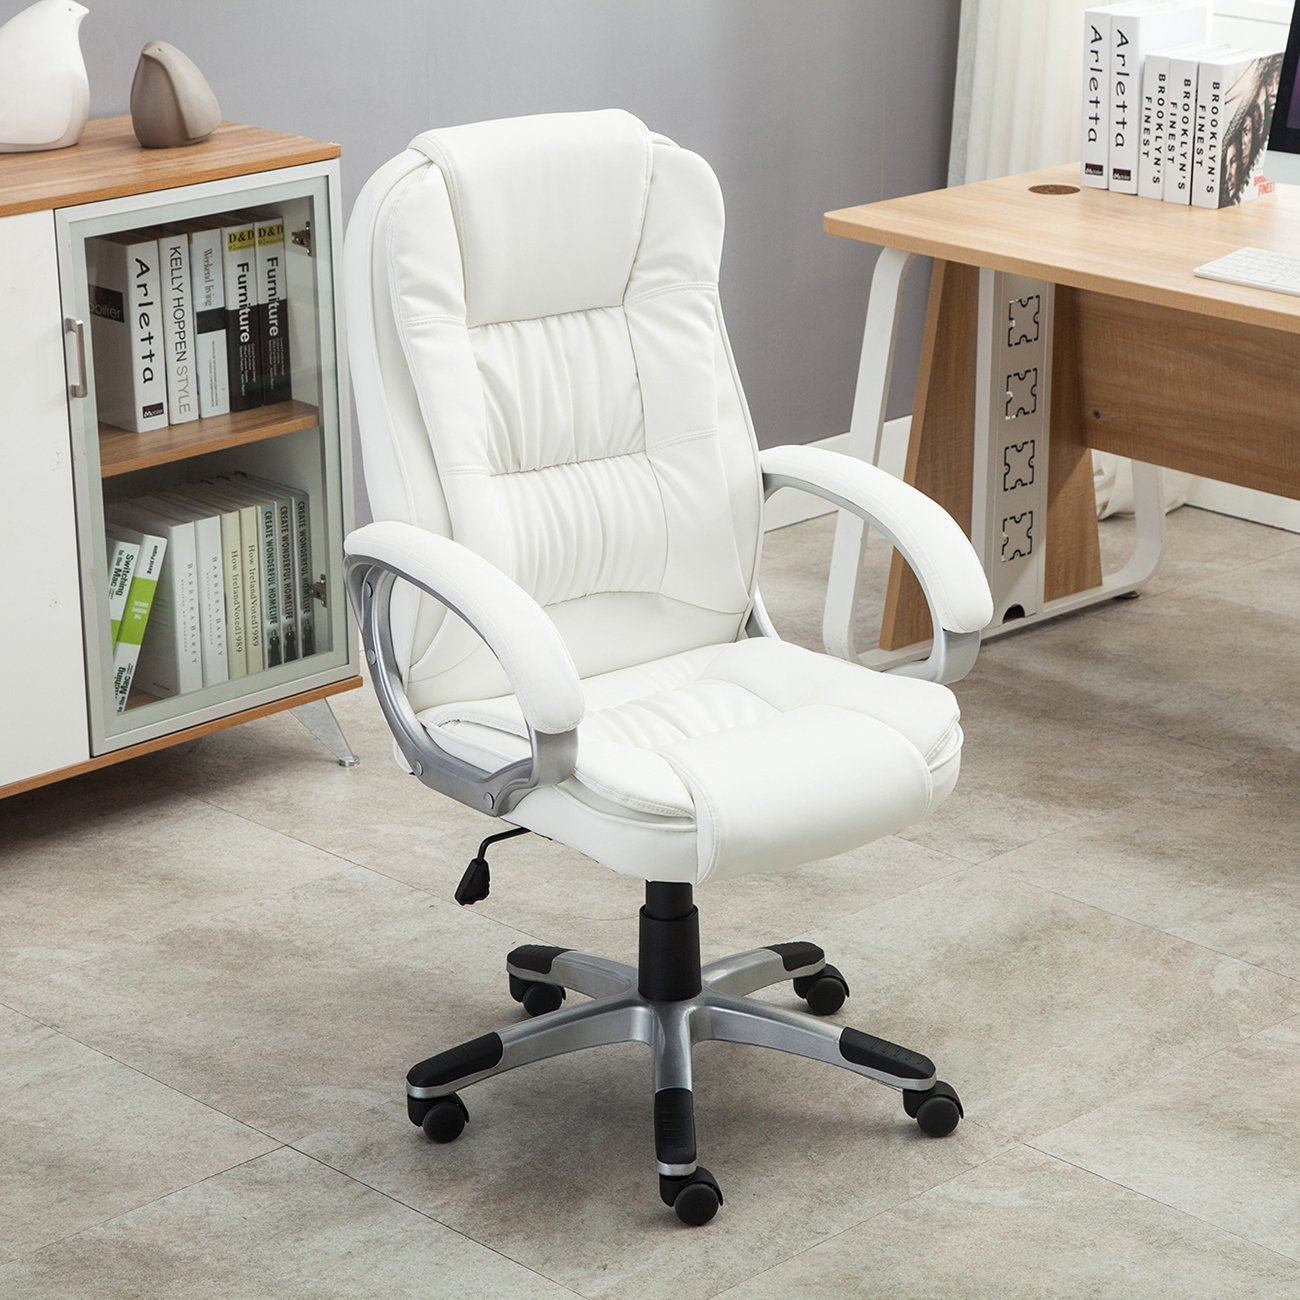 Amazon.com: Bellezza Ergonomic Office PU Leather Chair Executive ...